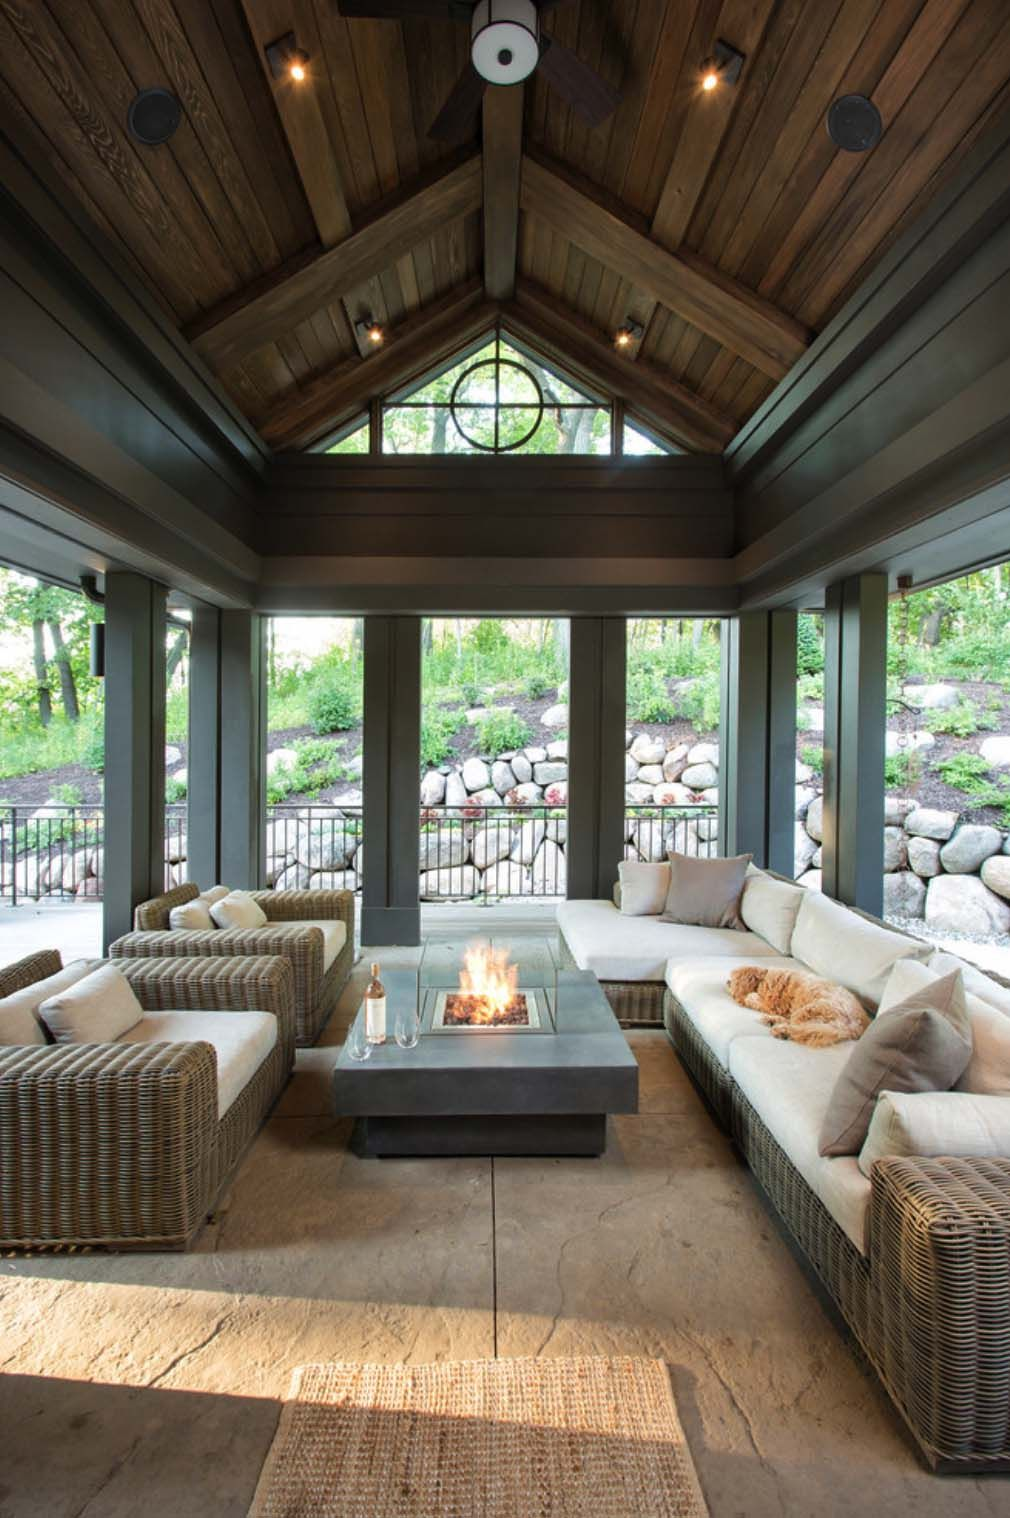 38 Amazingly cozy and relaxing screened porch design ideas #deckpatio